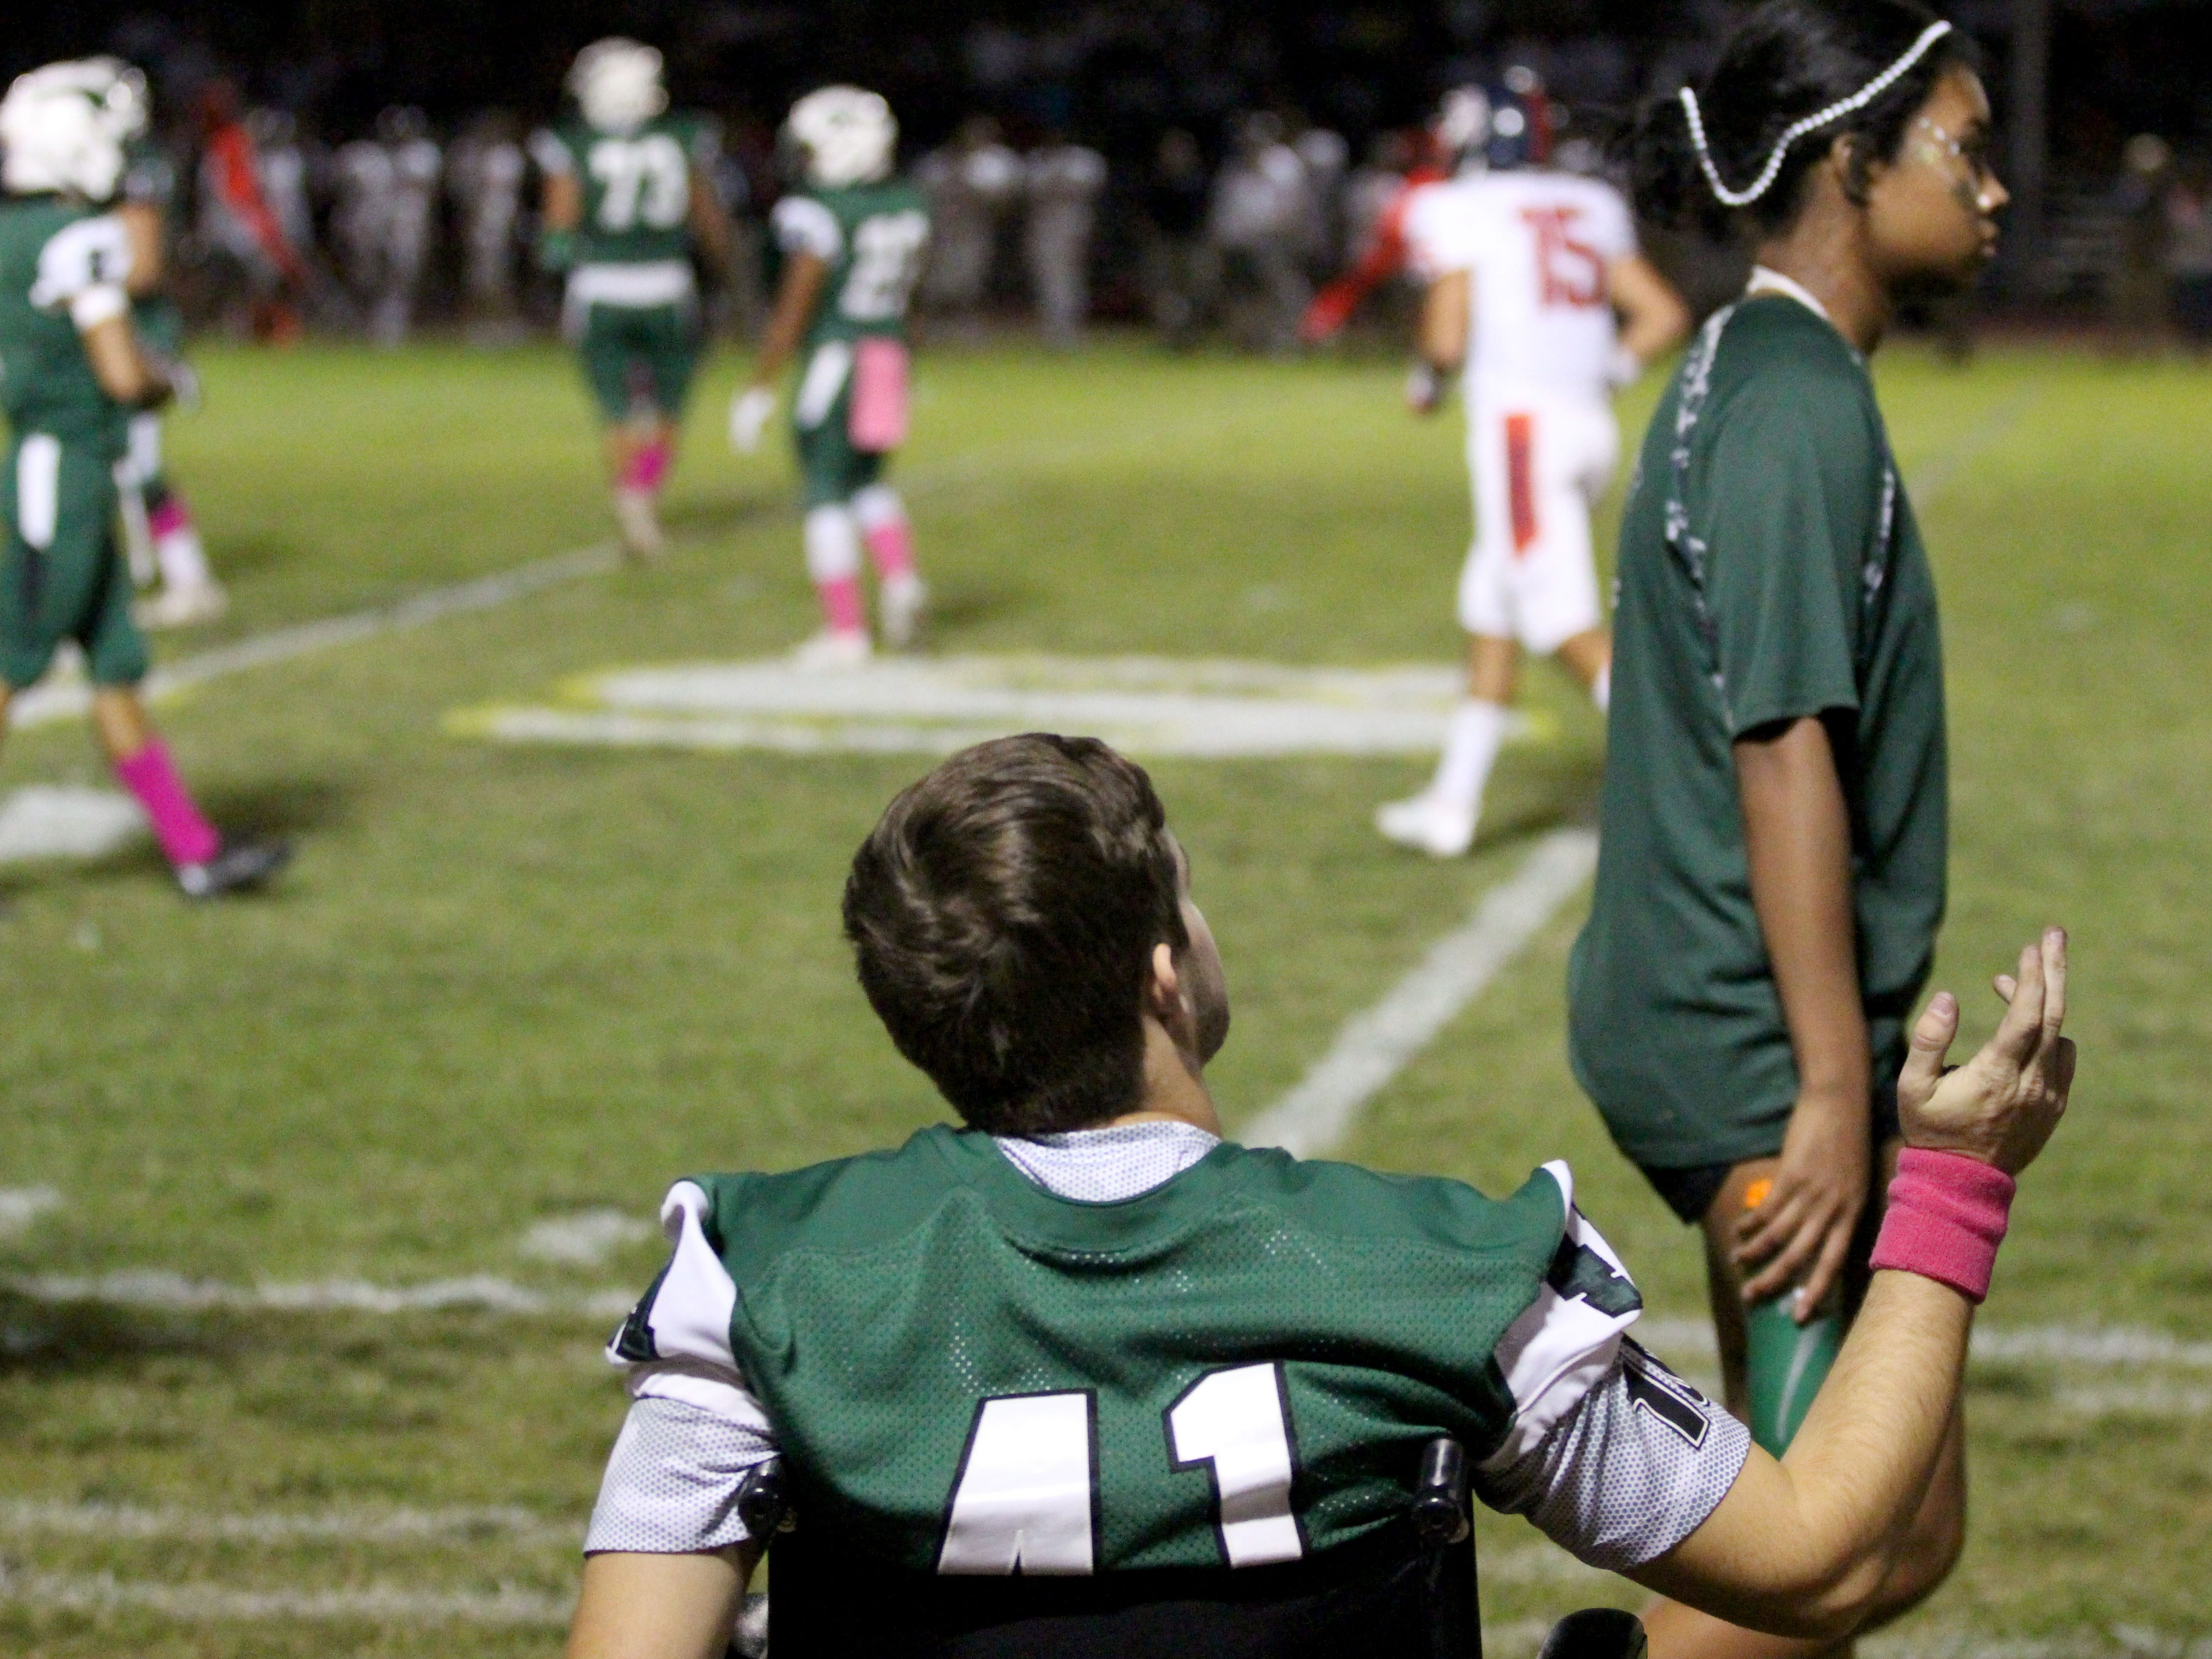 Injured Sunnyslope player Garrett Cooper watches the team from his wheelchair on the sideline on Friday night at Sunnyslope High School on Oct. 5, 2018